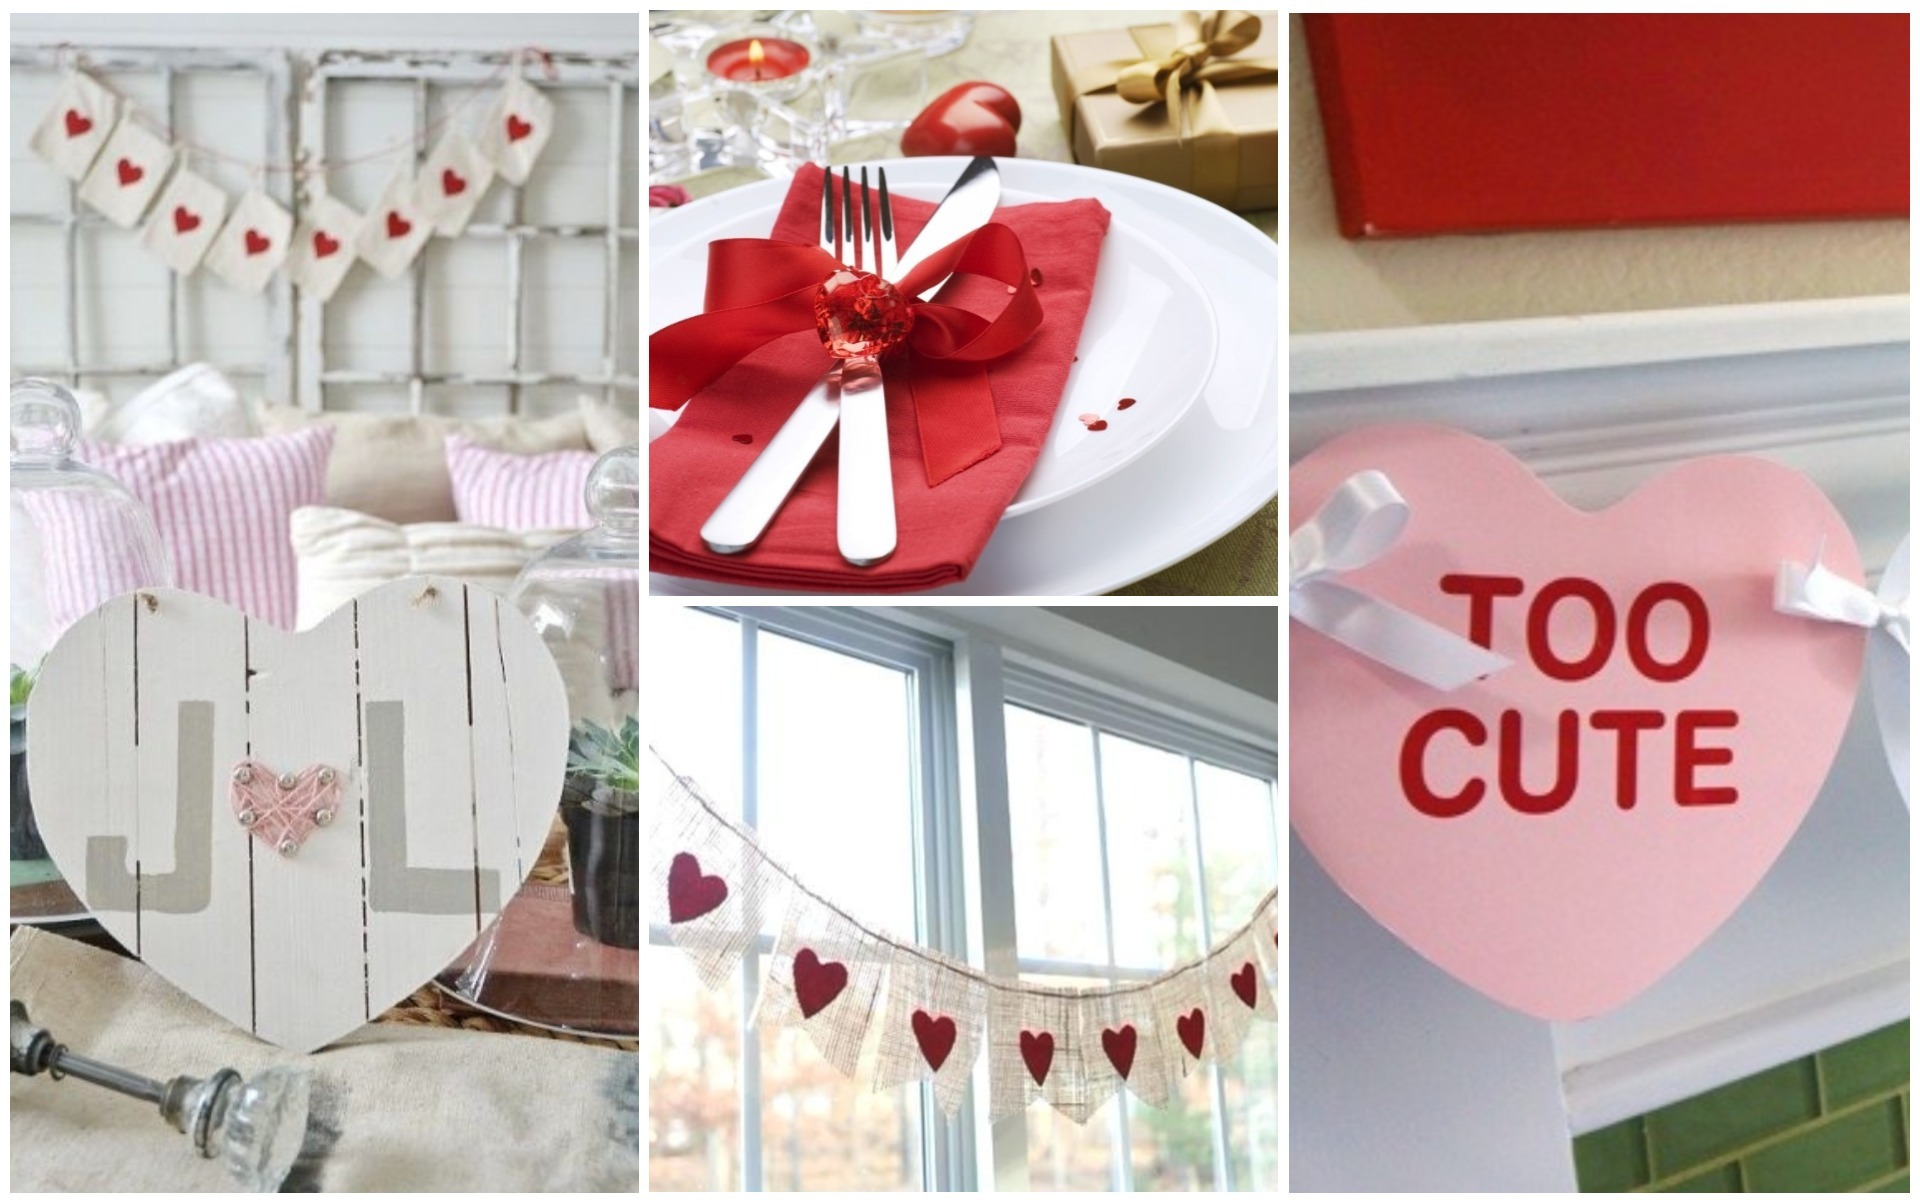 decorations crafts decorating cubicle decor valentines office home pinterest day ideas door holiday new for decoration diy